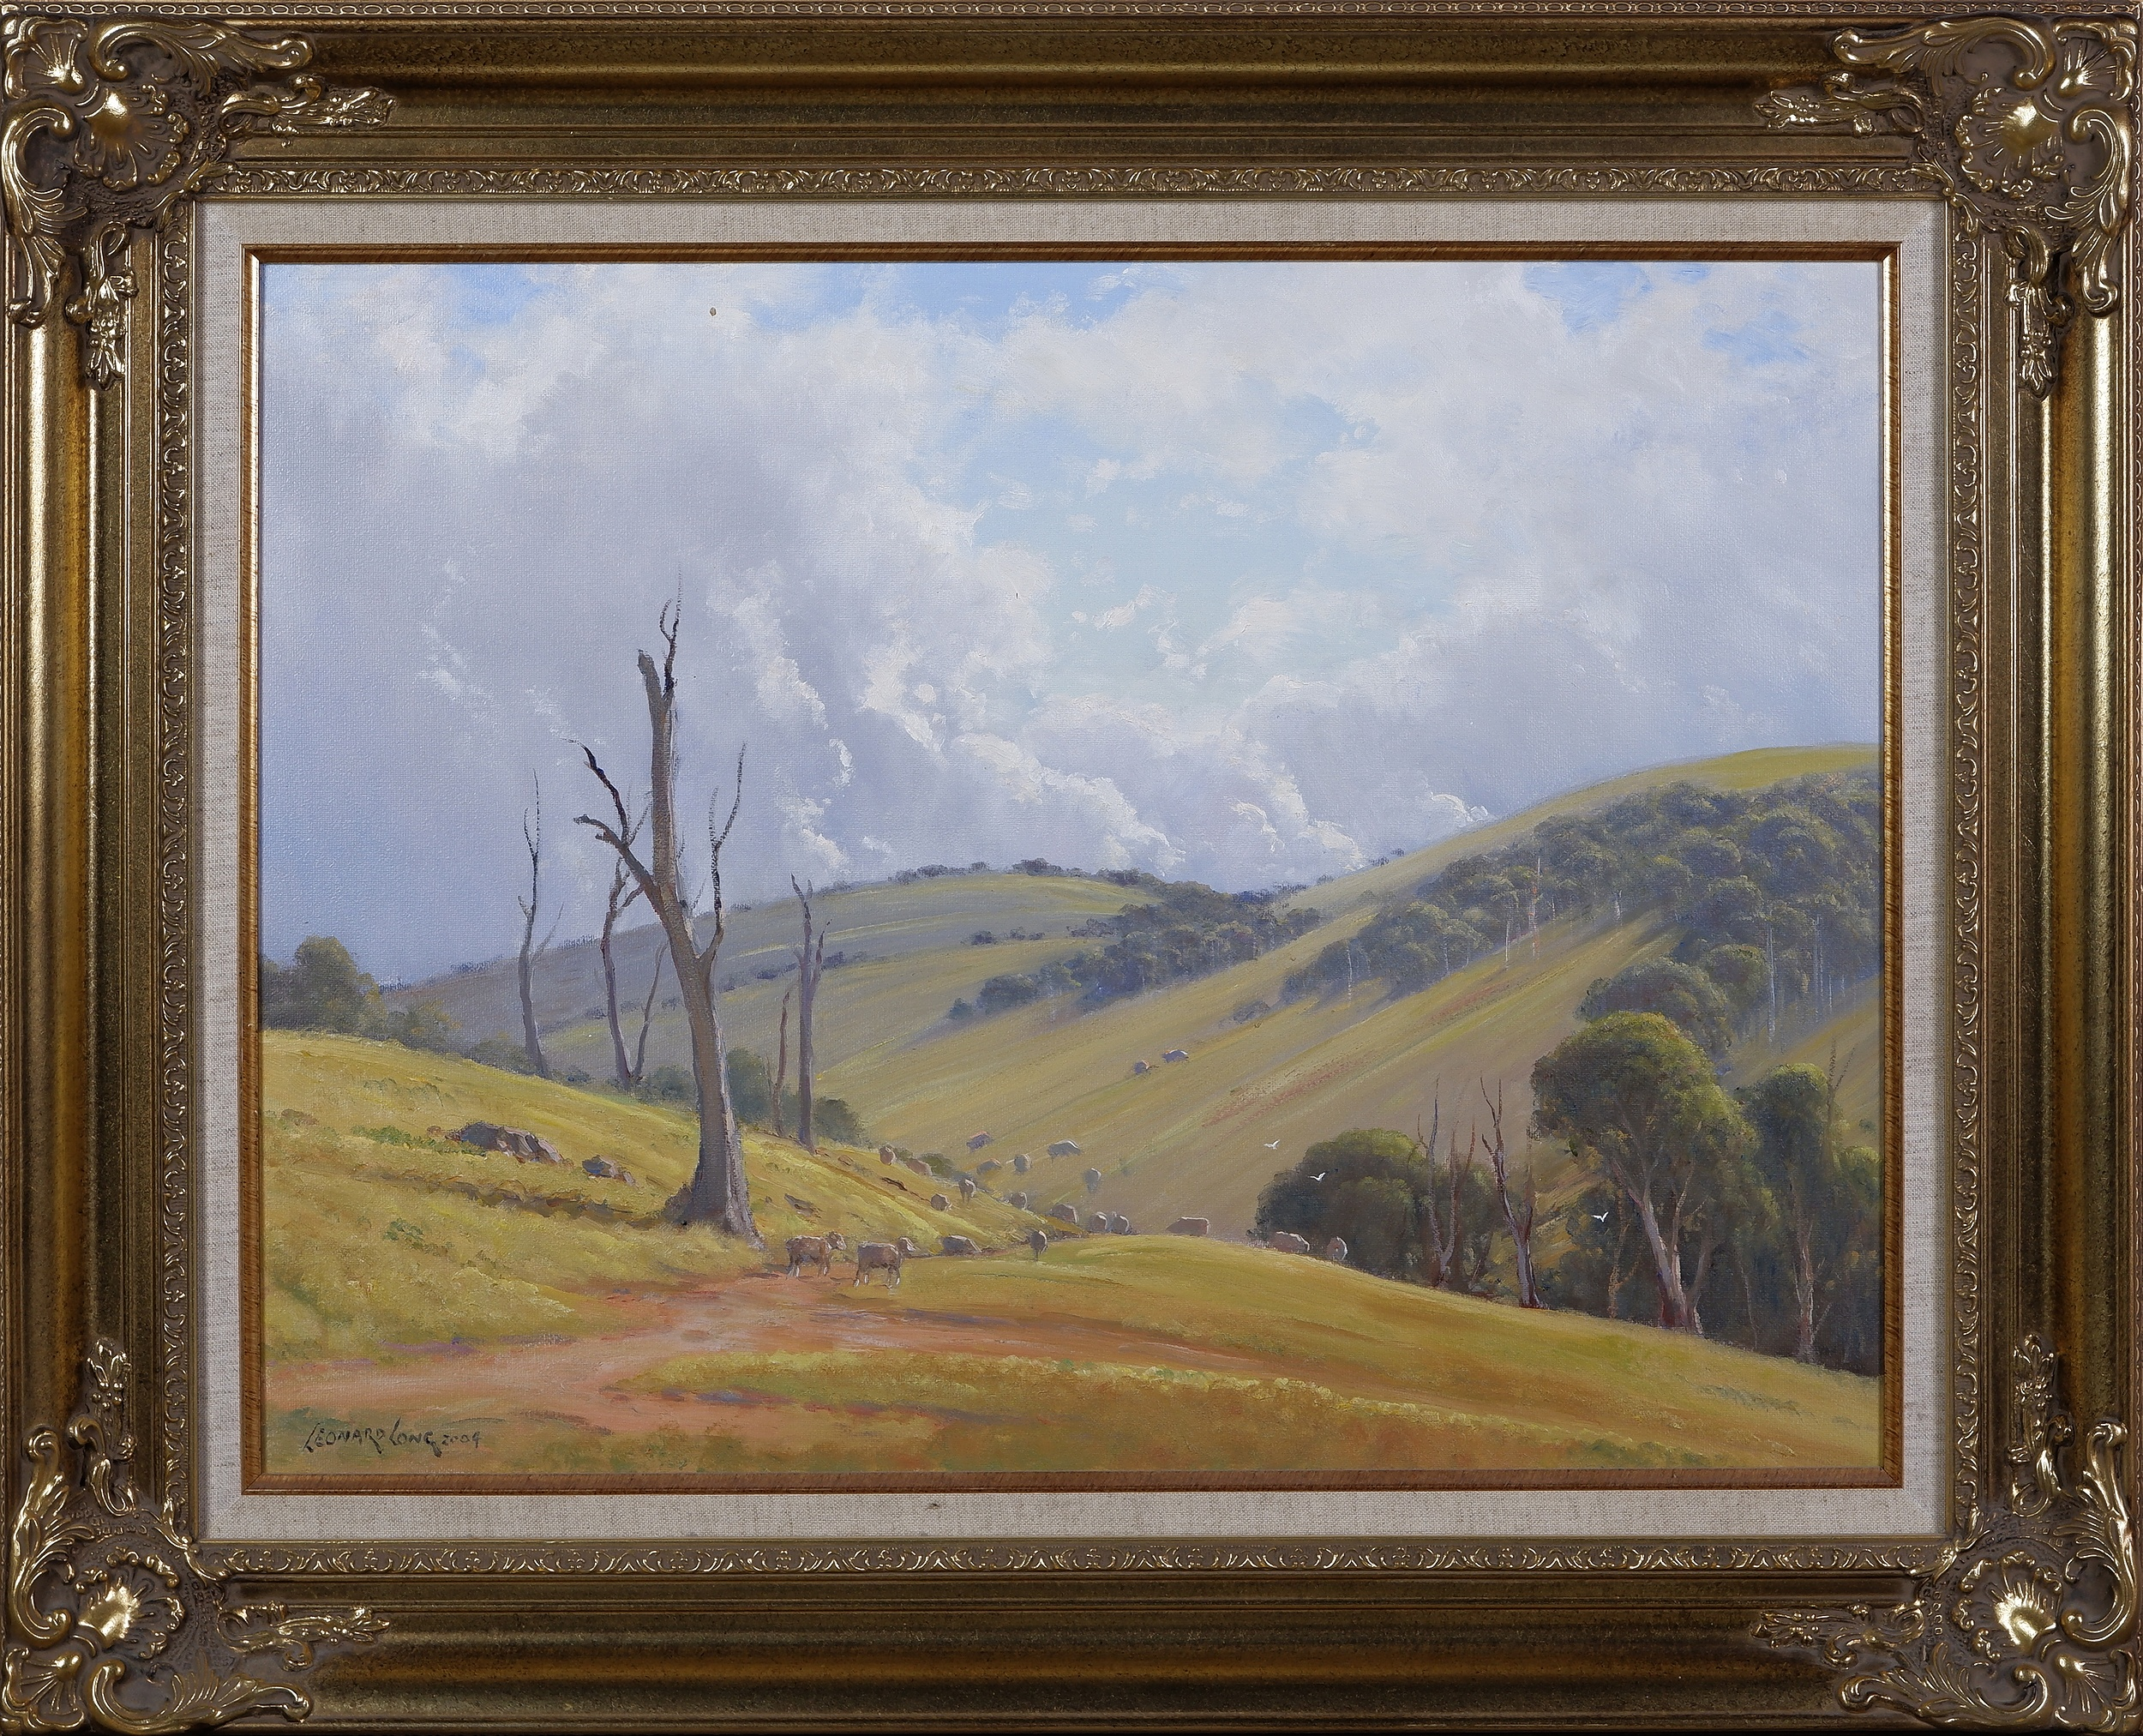 'Leonard Long (1911-2013), Stormy Day - Wee Jasper at Cookmondoon Station 2004, Oil on Canvas on Board, 45 x 60 cm'